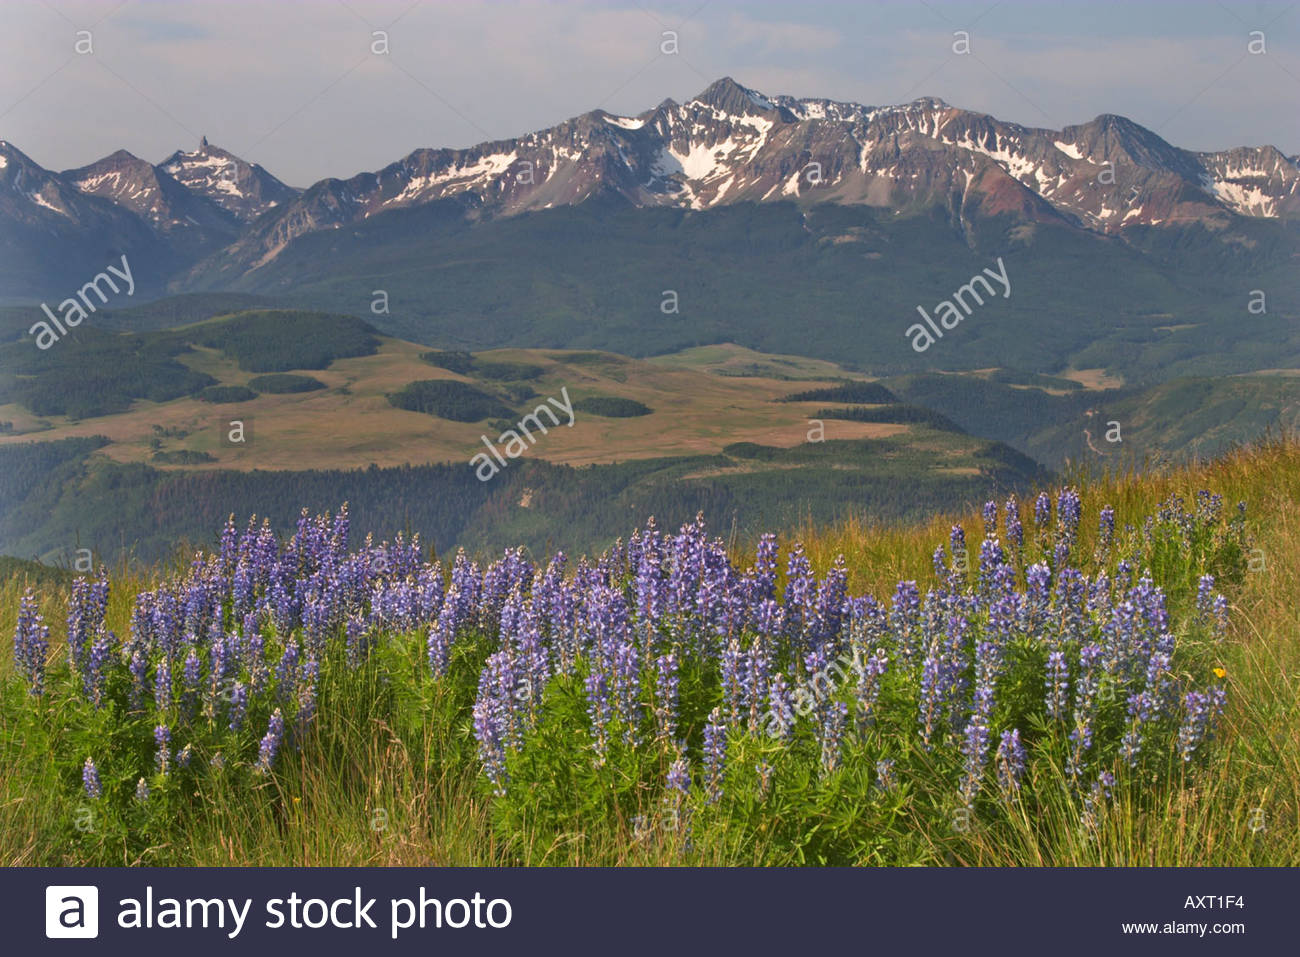 A large group of Lupines with snow capped mountains in the 1300x957